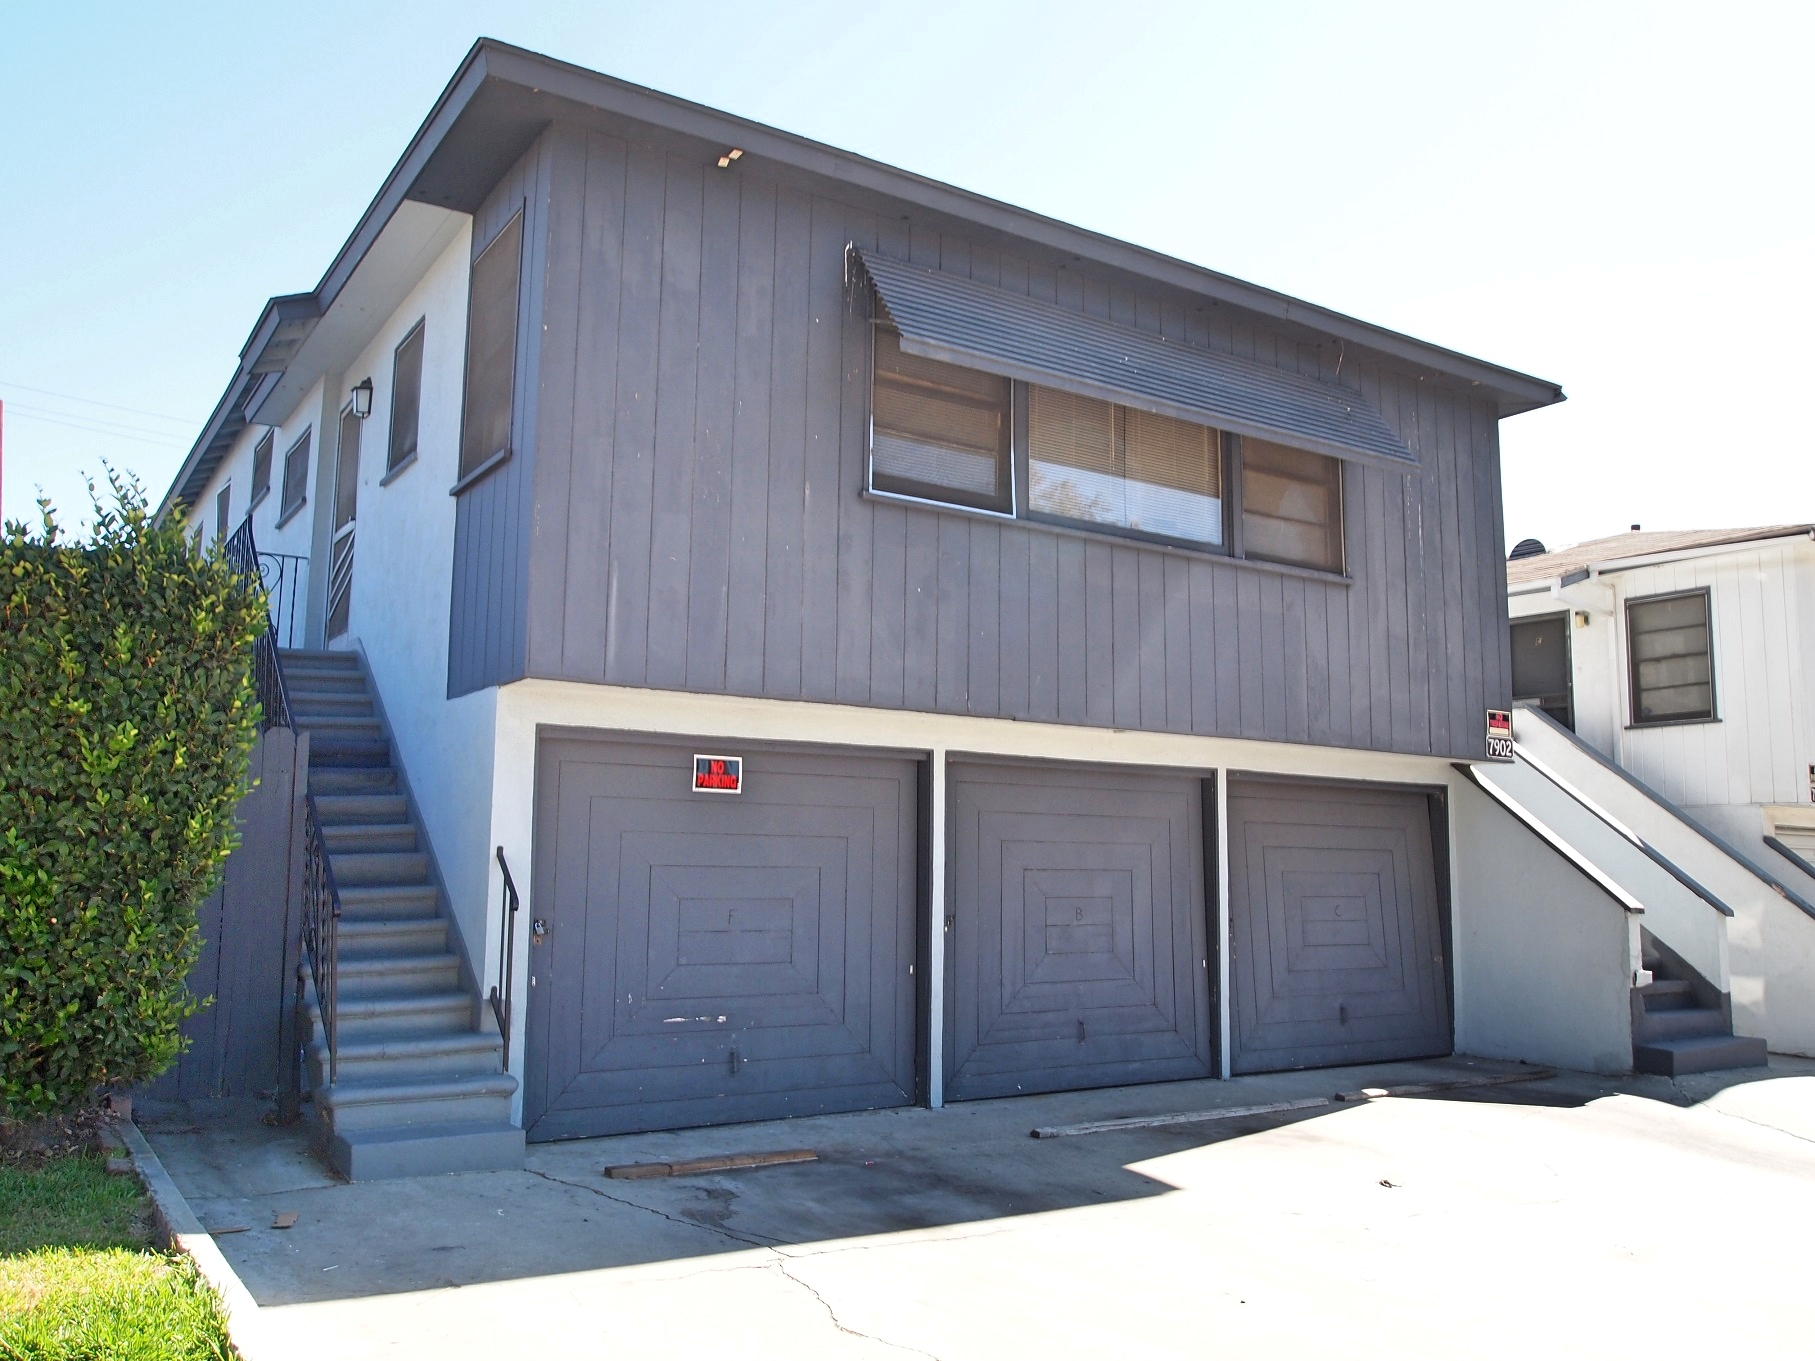 Whittier Multifamily Investment Property